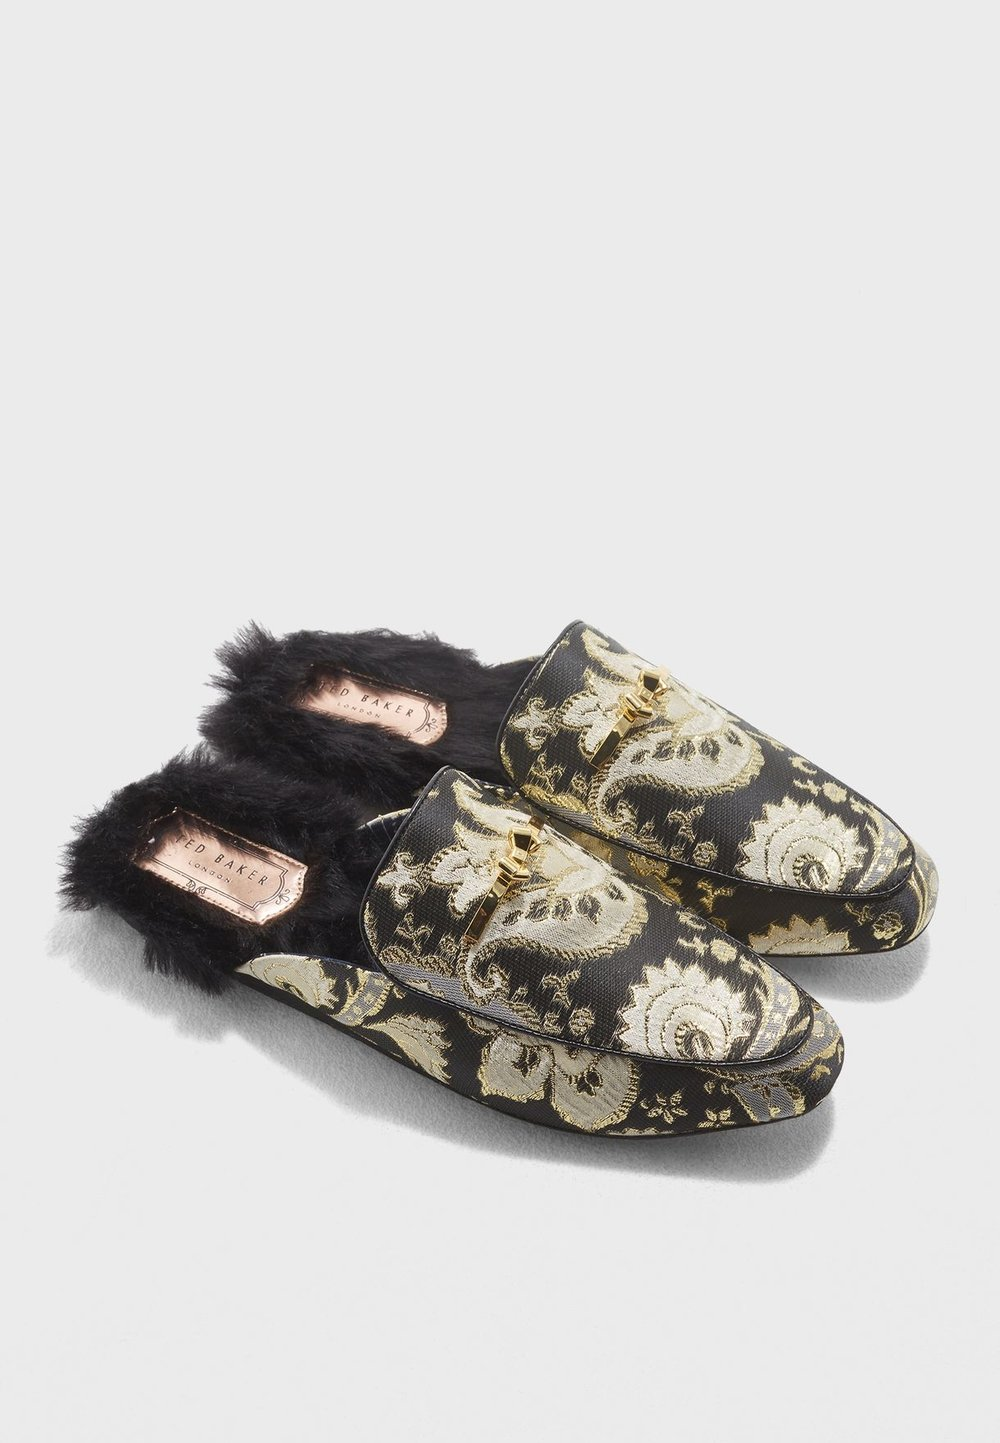 Flats, 750aed/sar, Ted Baker